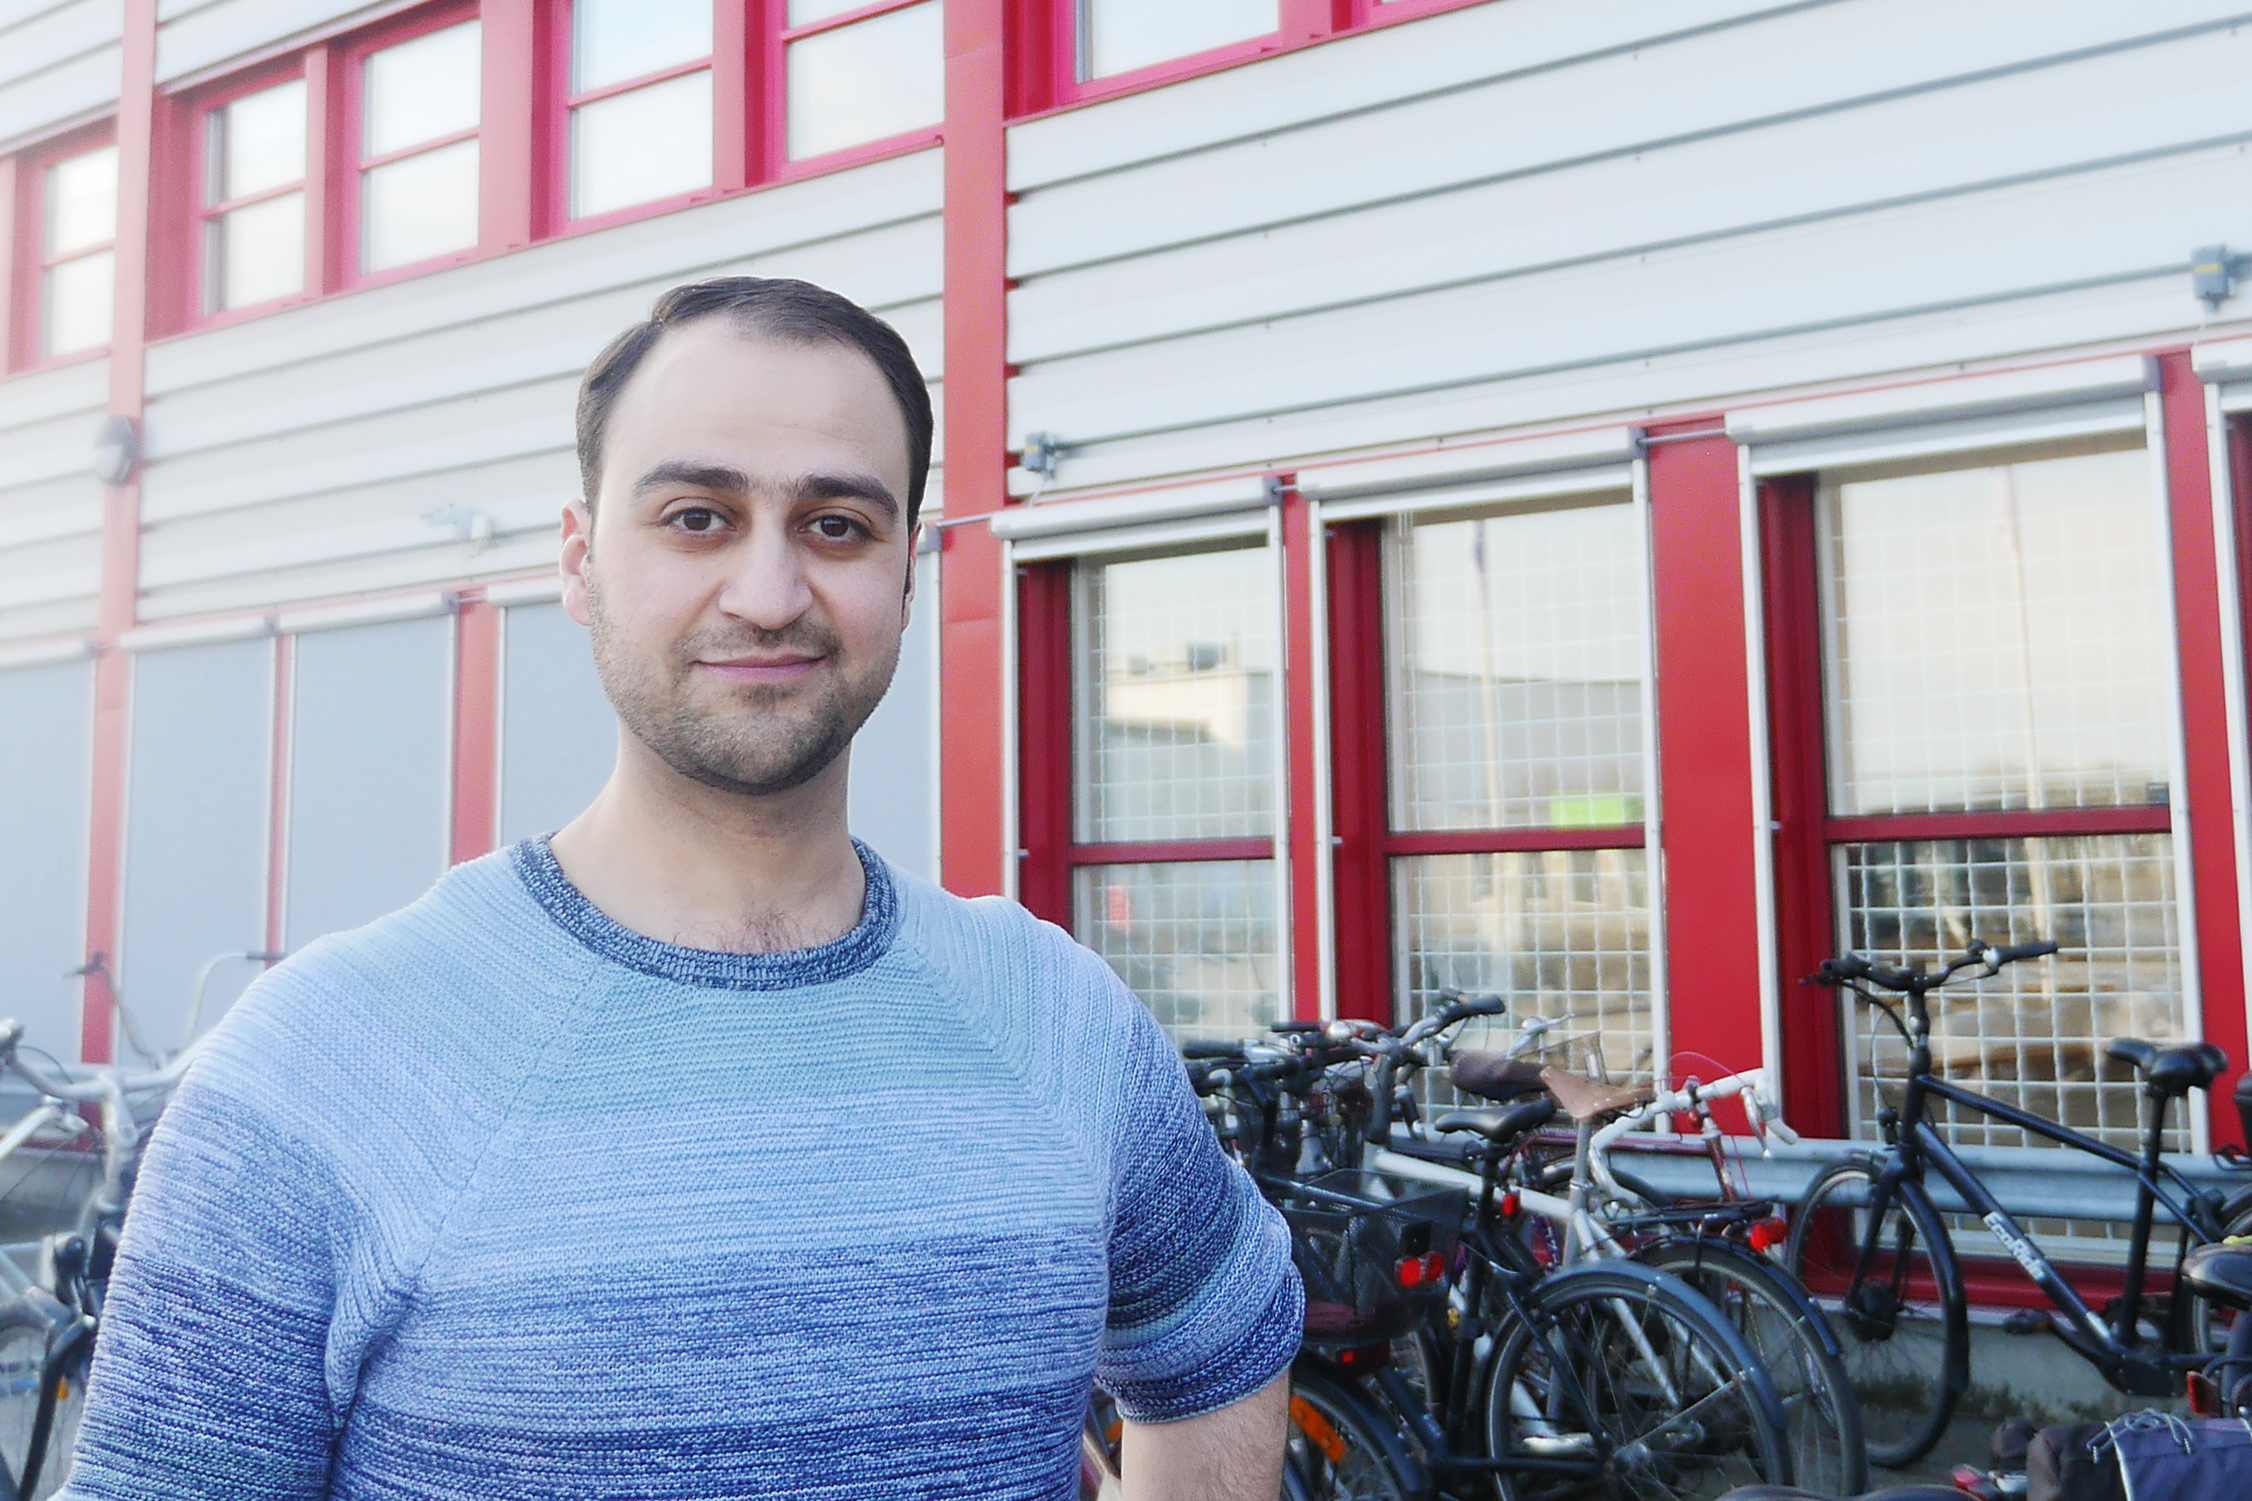 How do you say servo-valve in Swedish? Basel's phrasebook helps refugee engineers